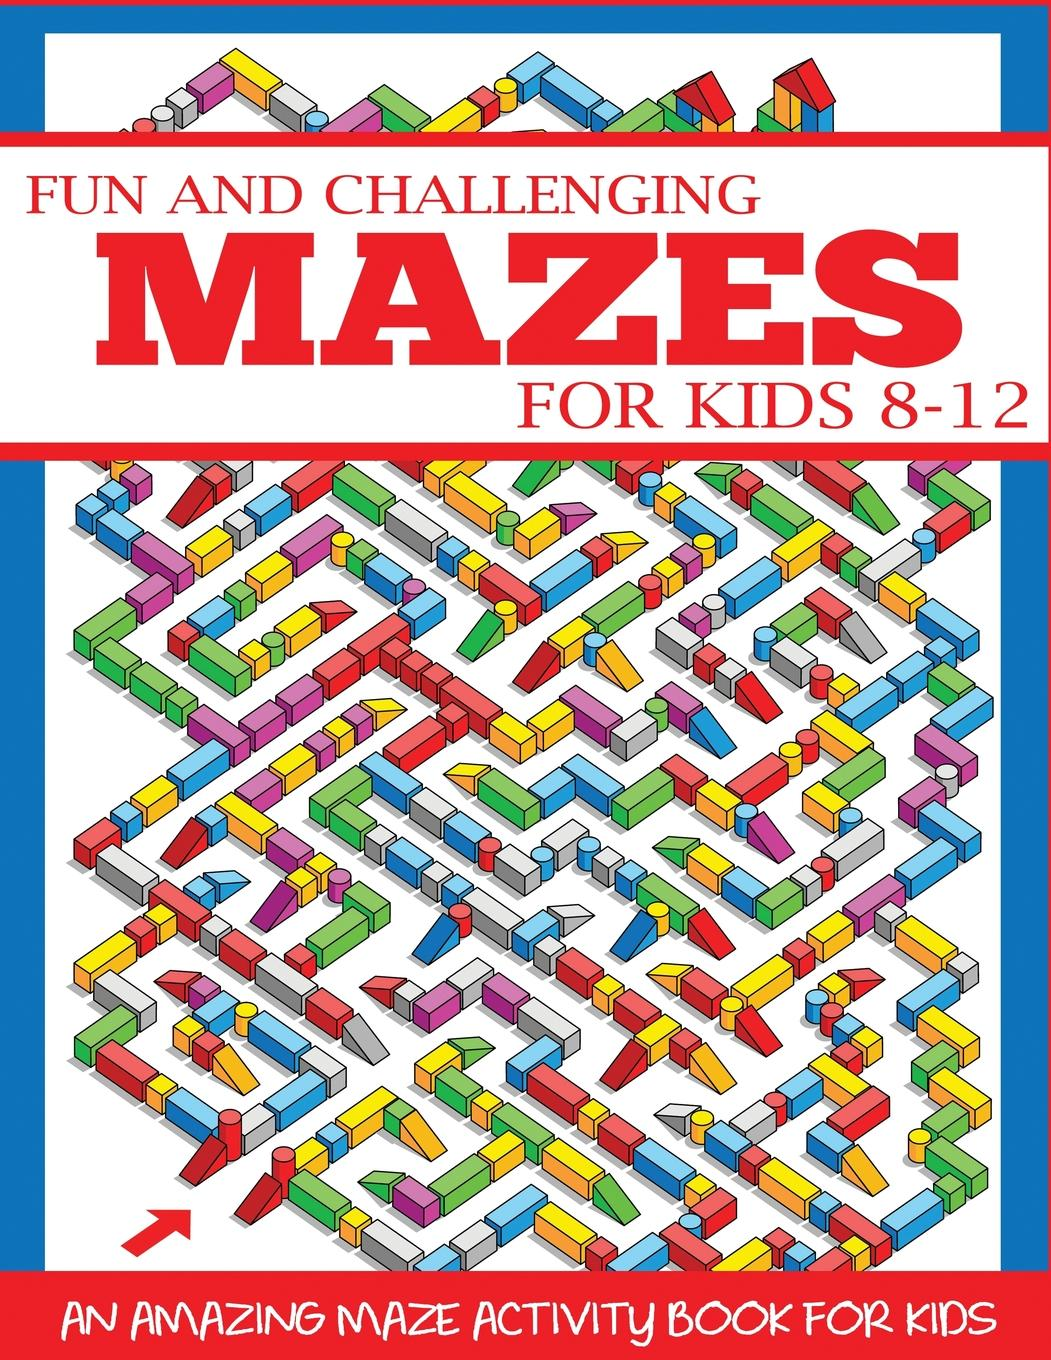 Maze Books For Kids Fun And Challenging Mazes For Kids 8